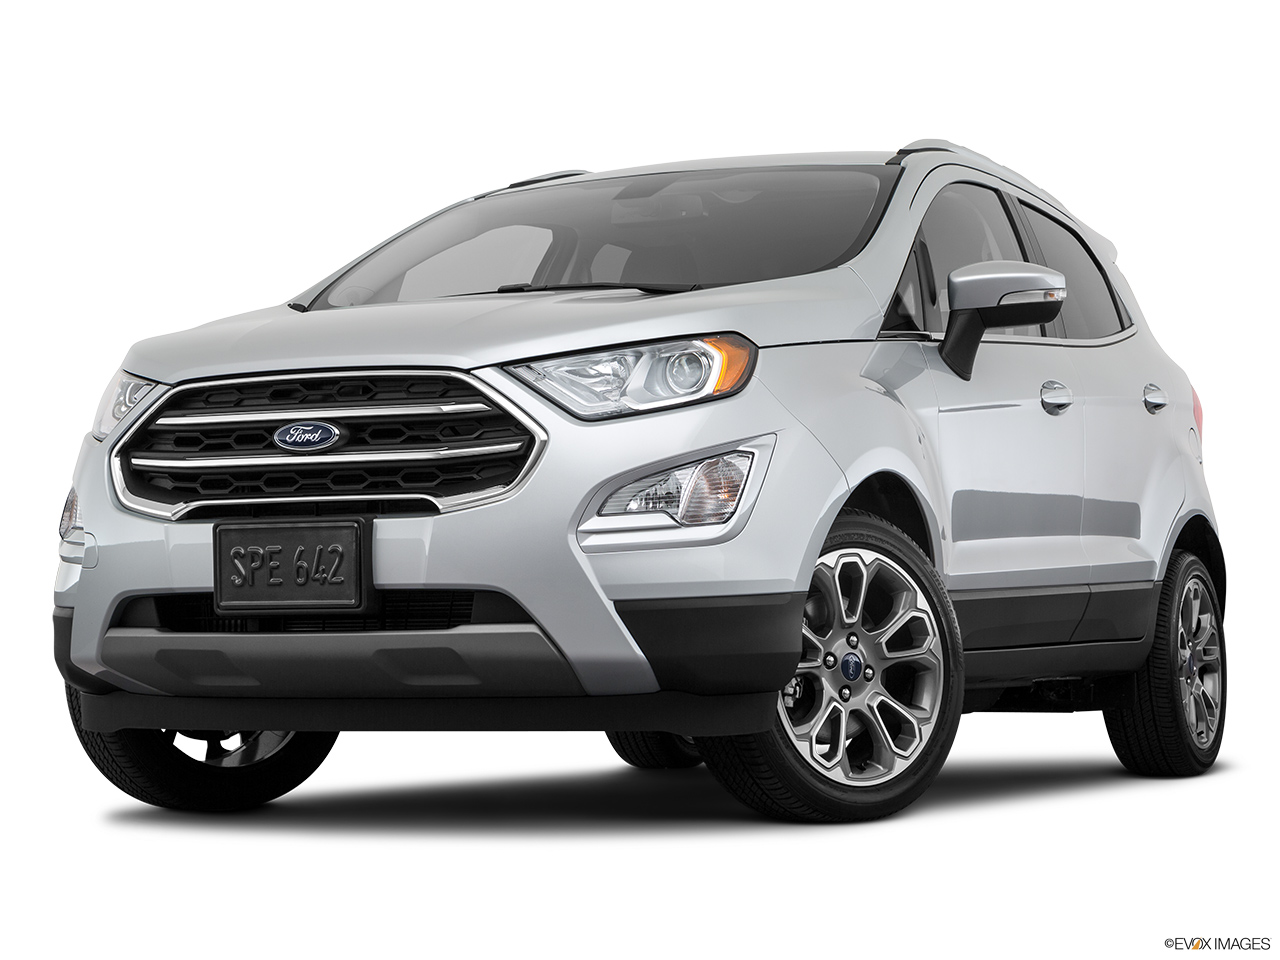 Ford EcoSport 2018 1.5 Titanium, Saudi Arabia, Front angle view, low wide perspective.